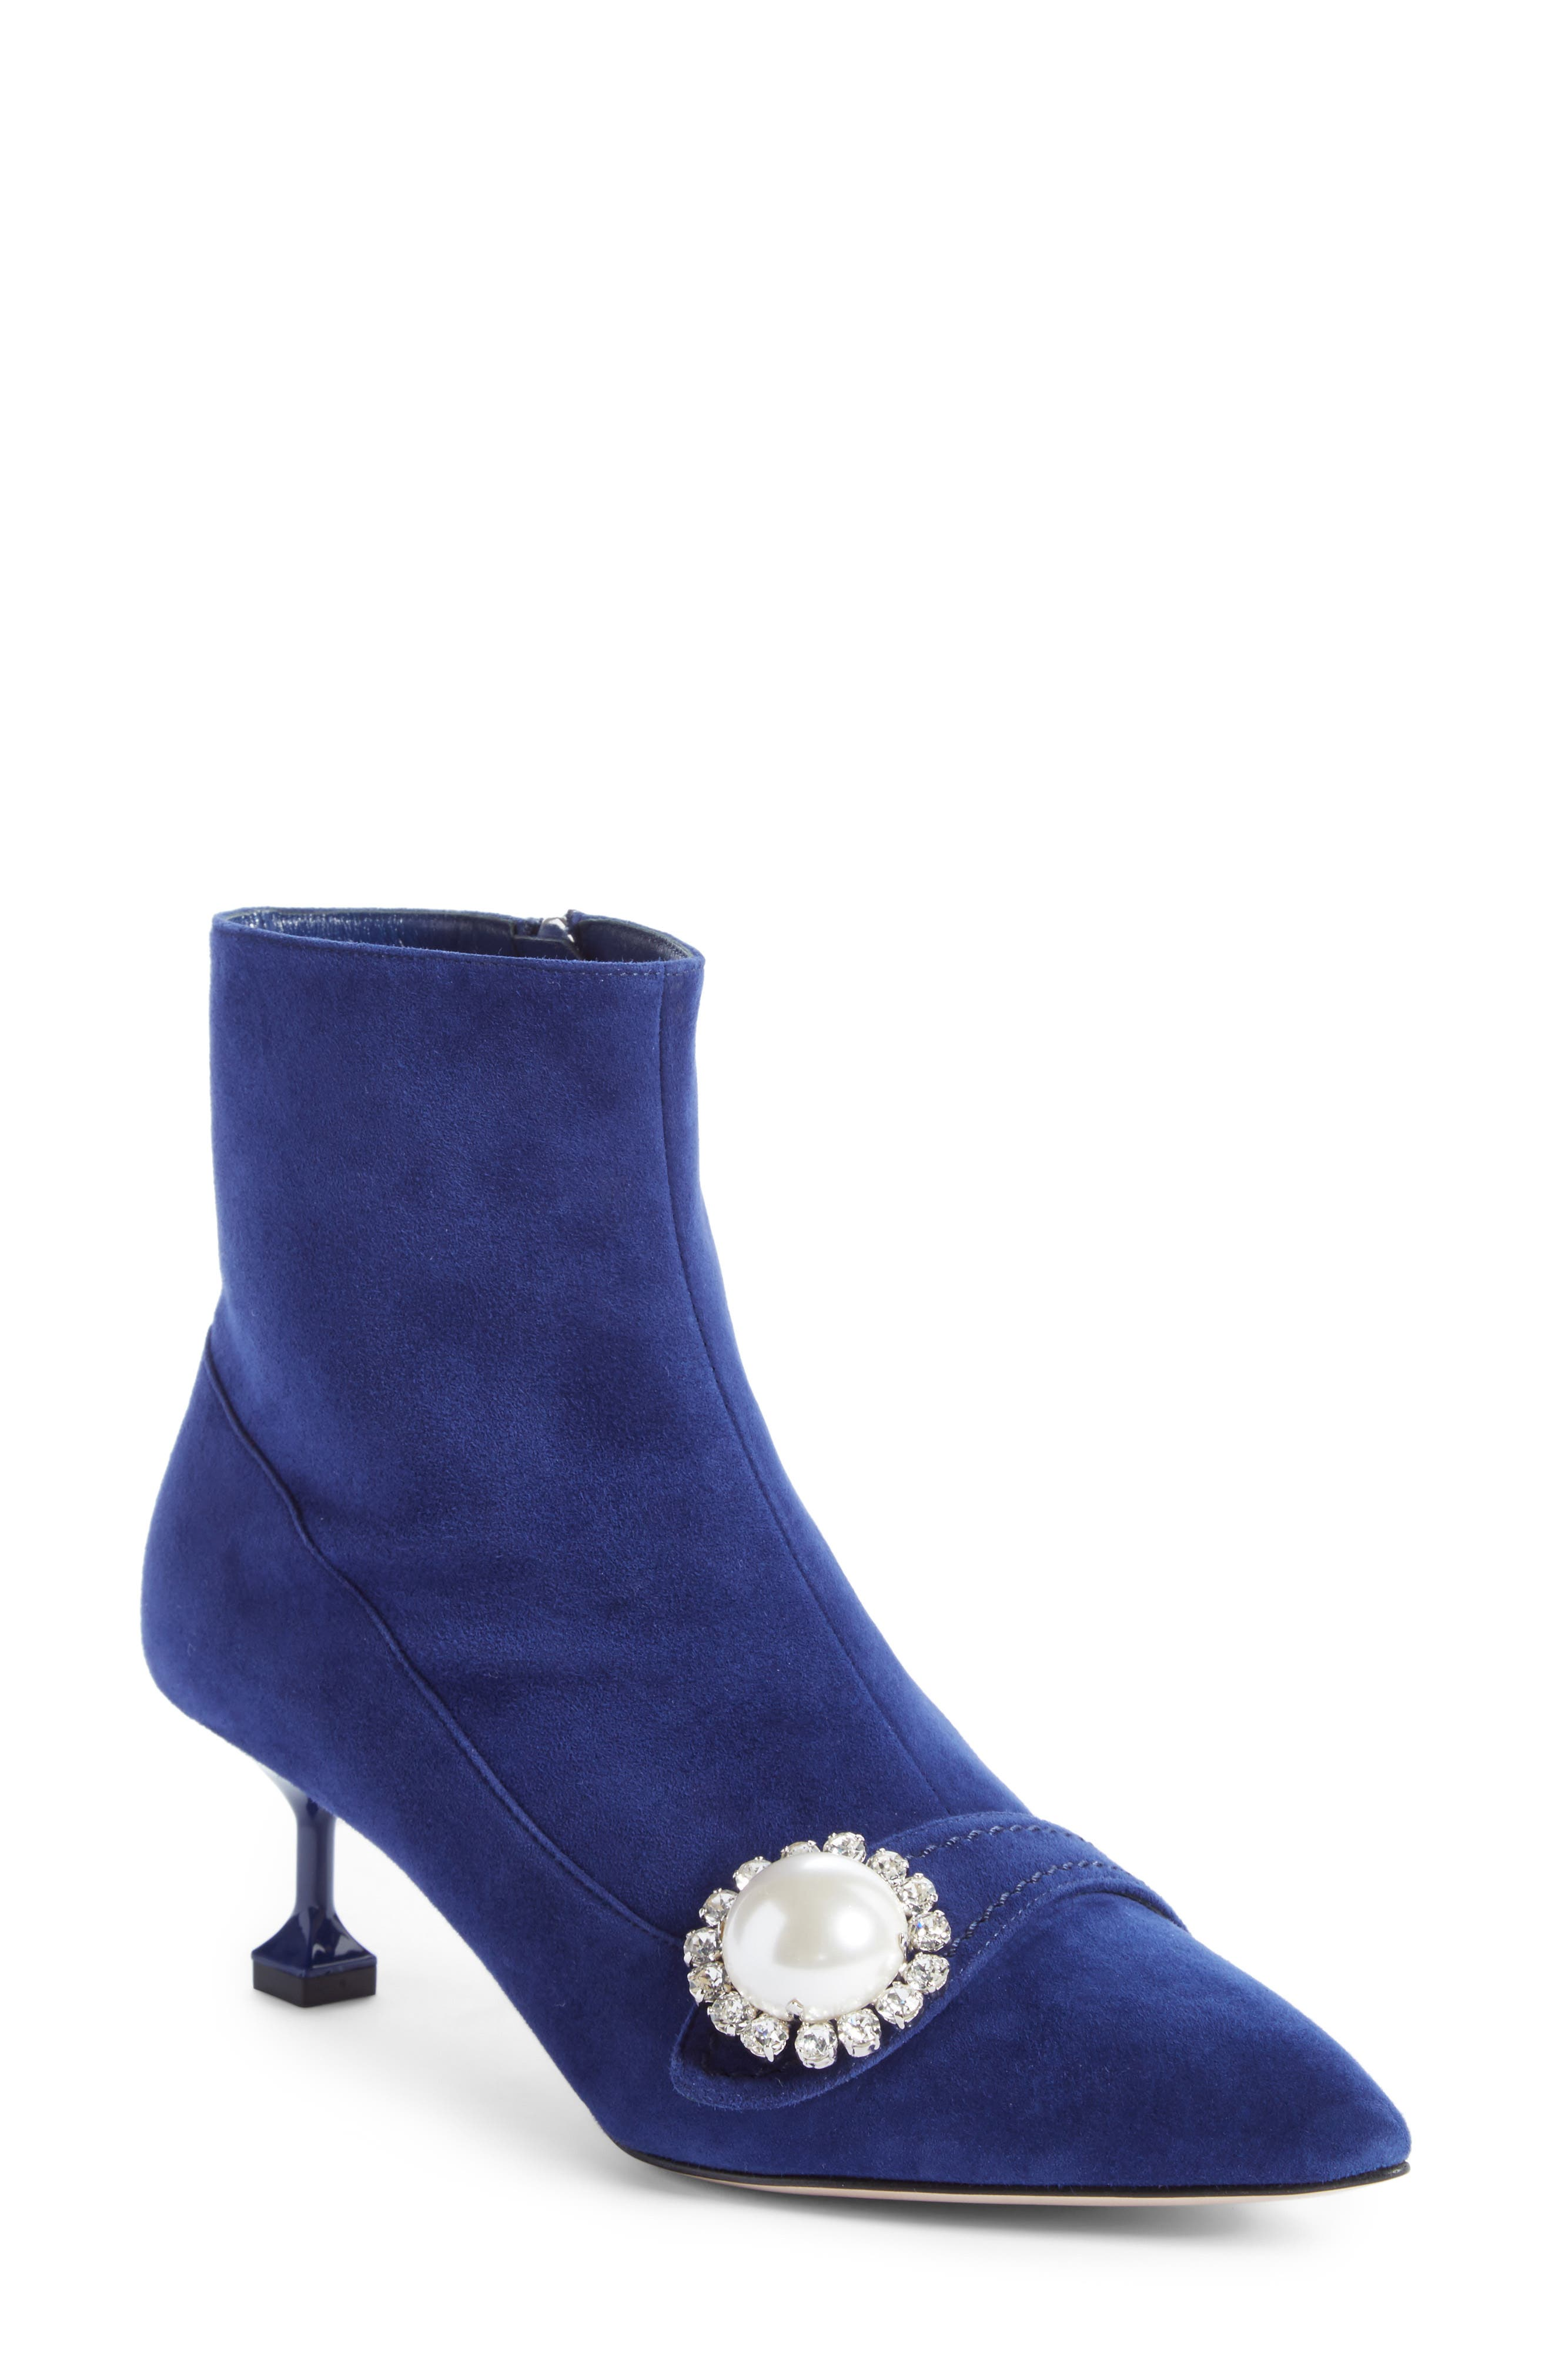 Miu Miu Embellished Pointy Toe Bootie (Women)